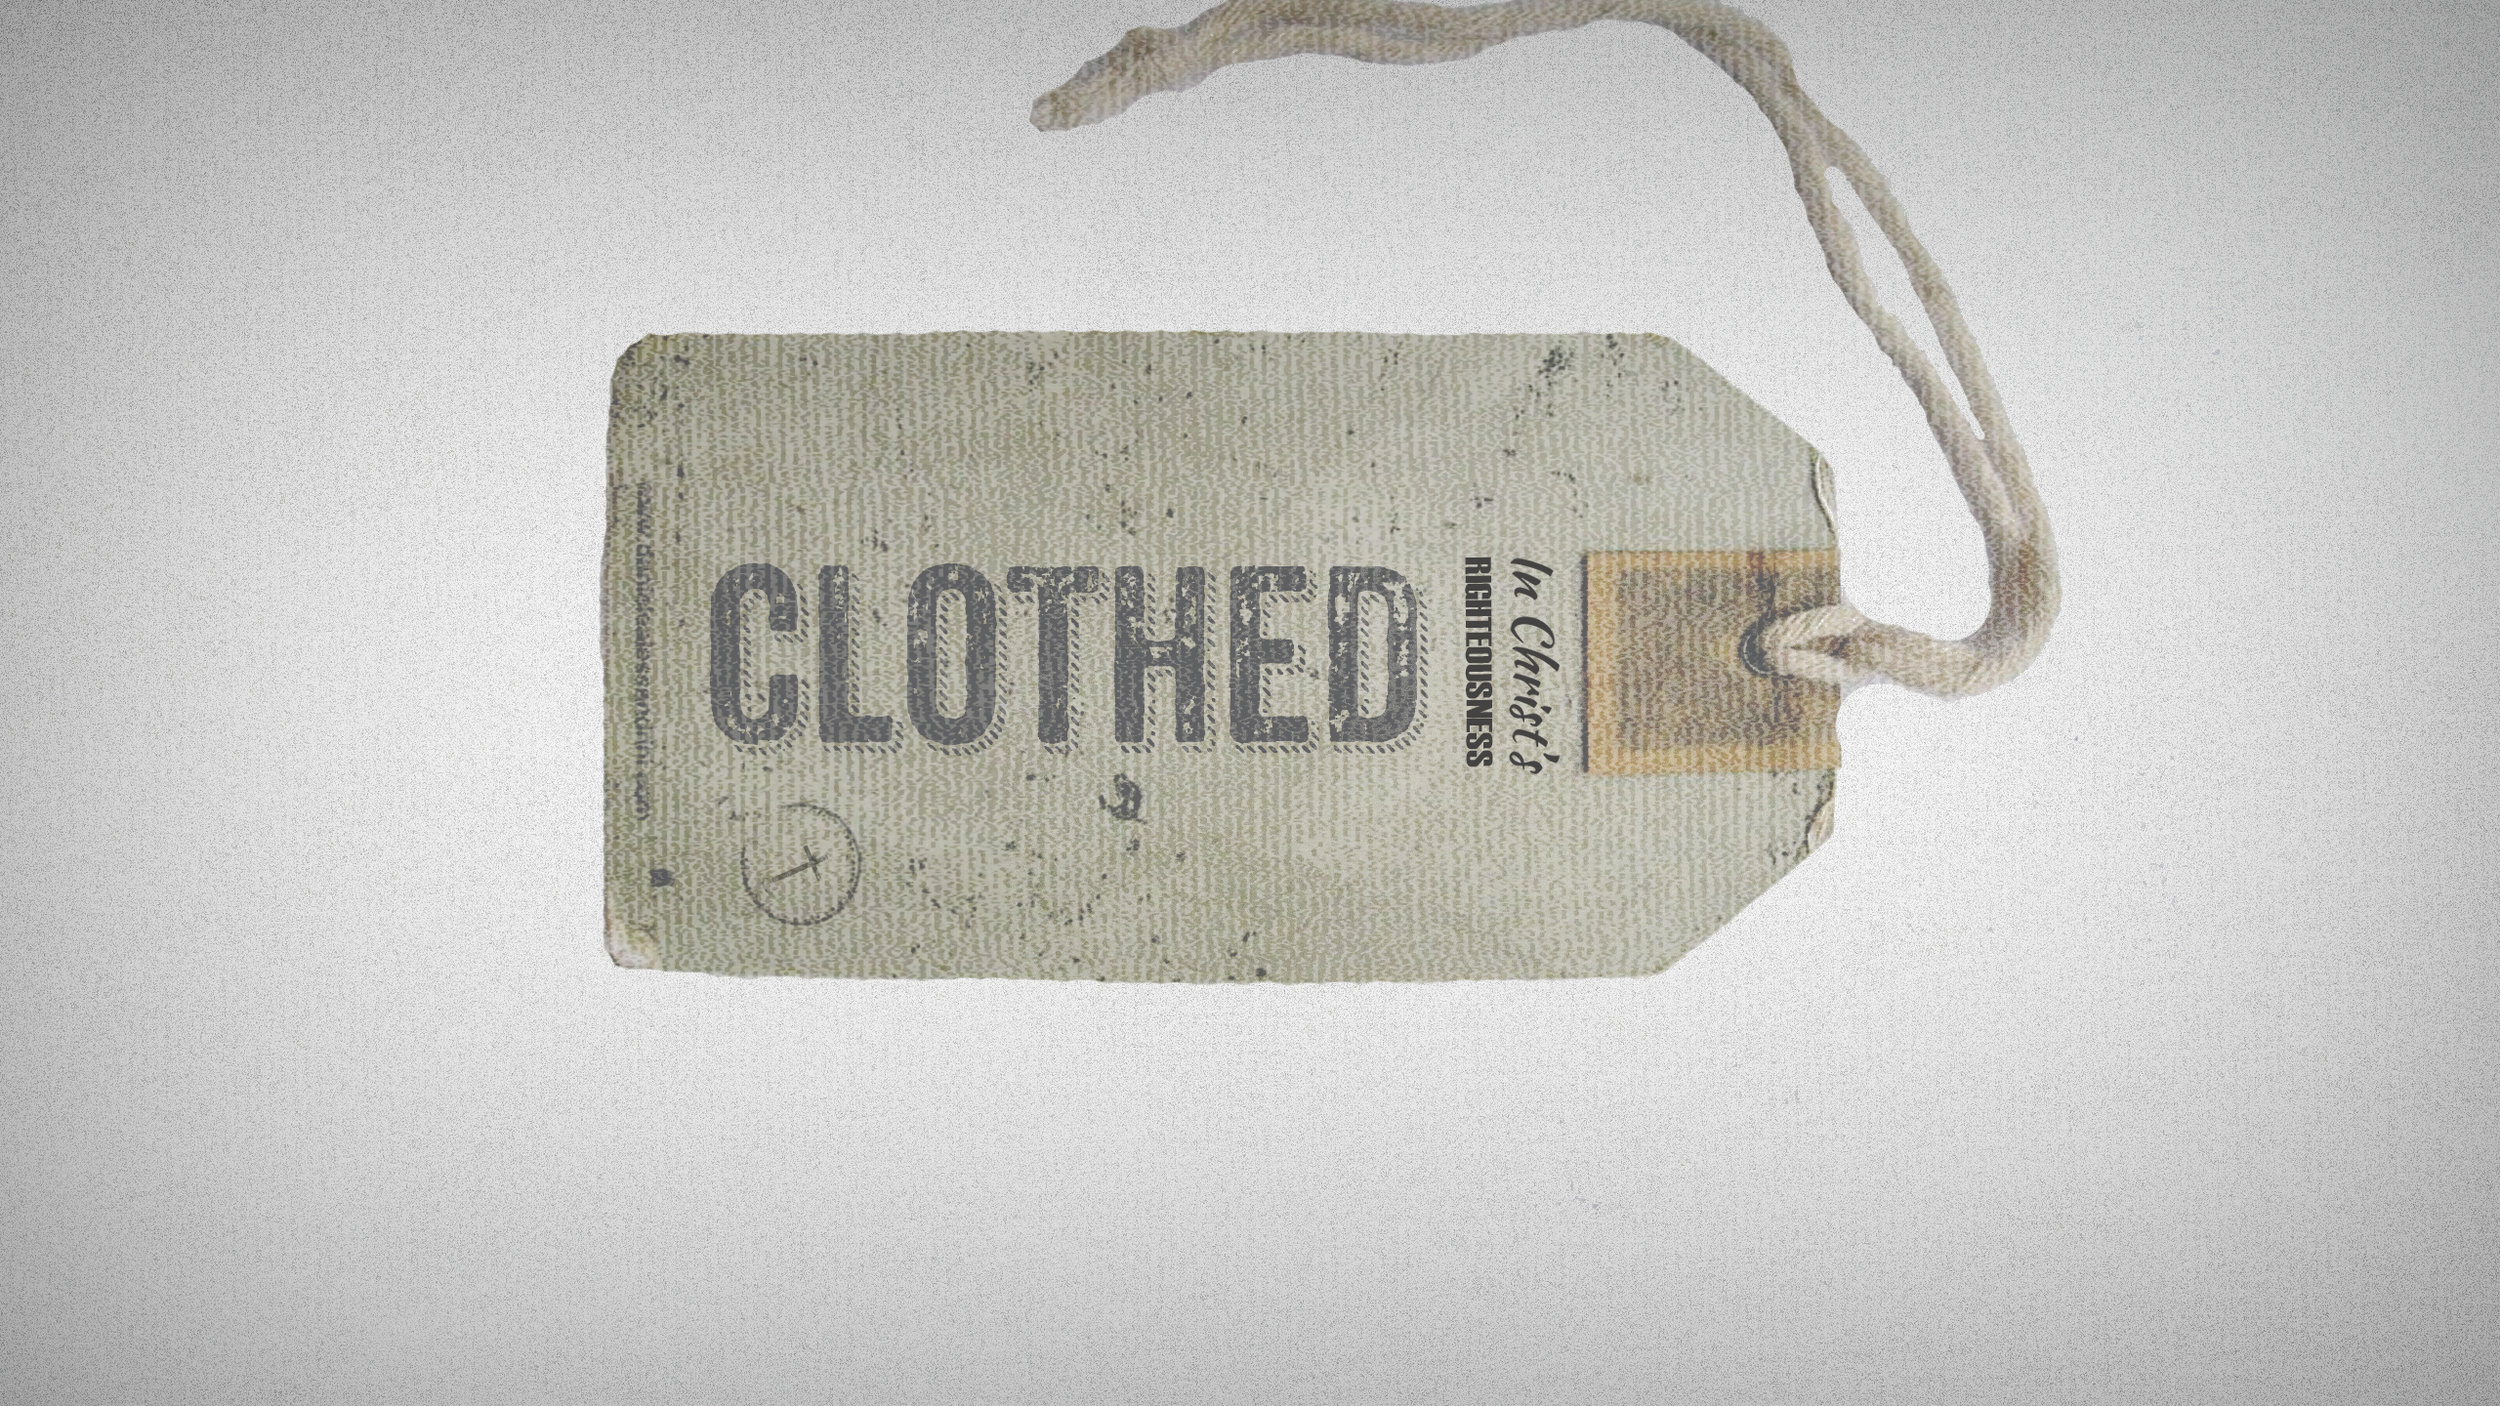 36304-clothed_2.jpg